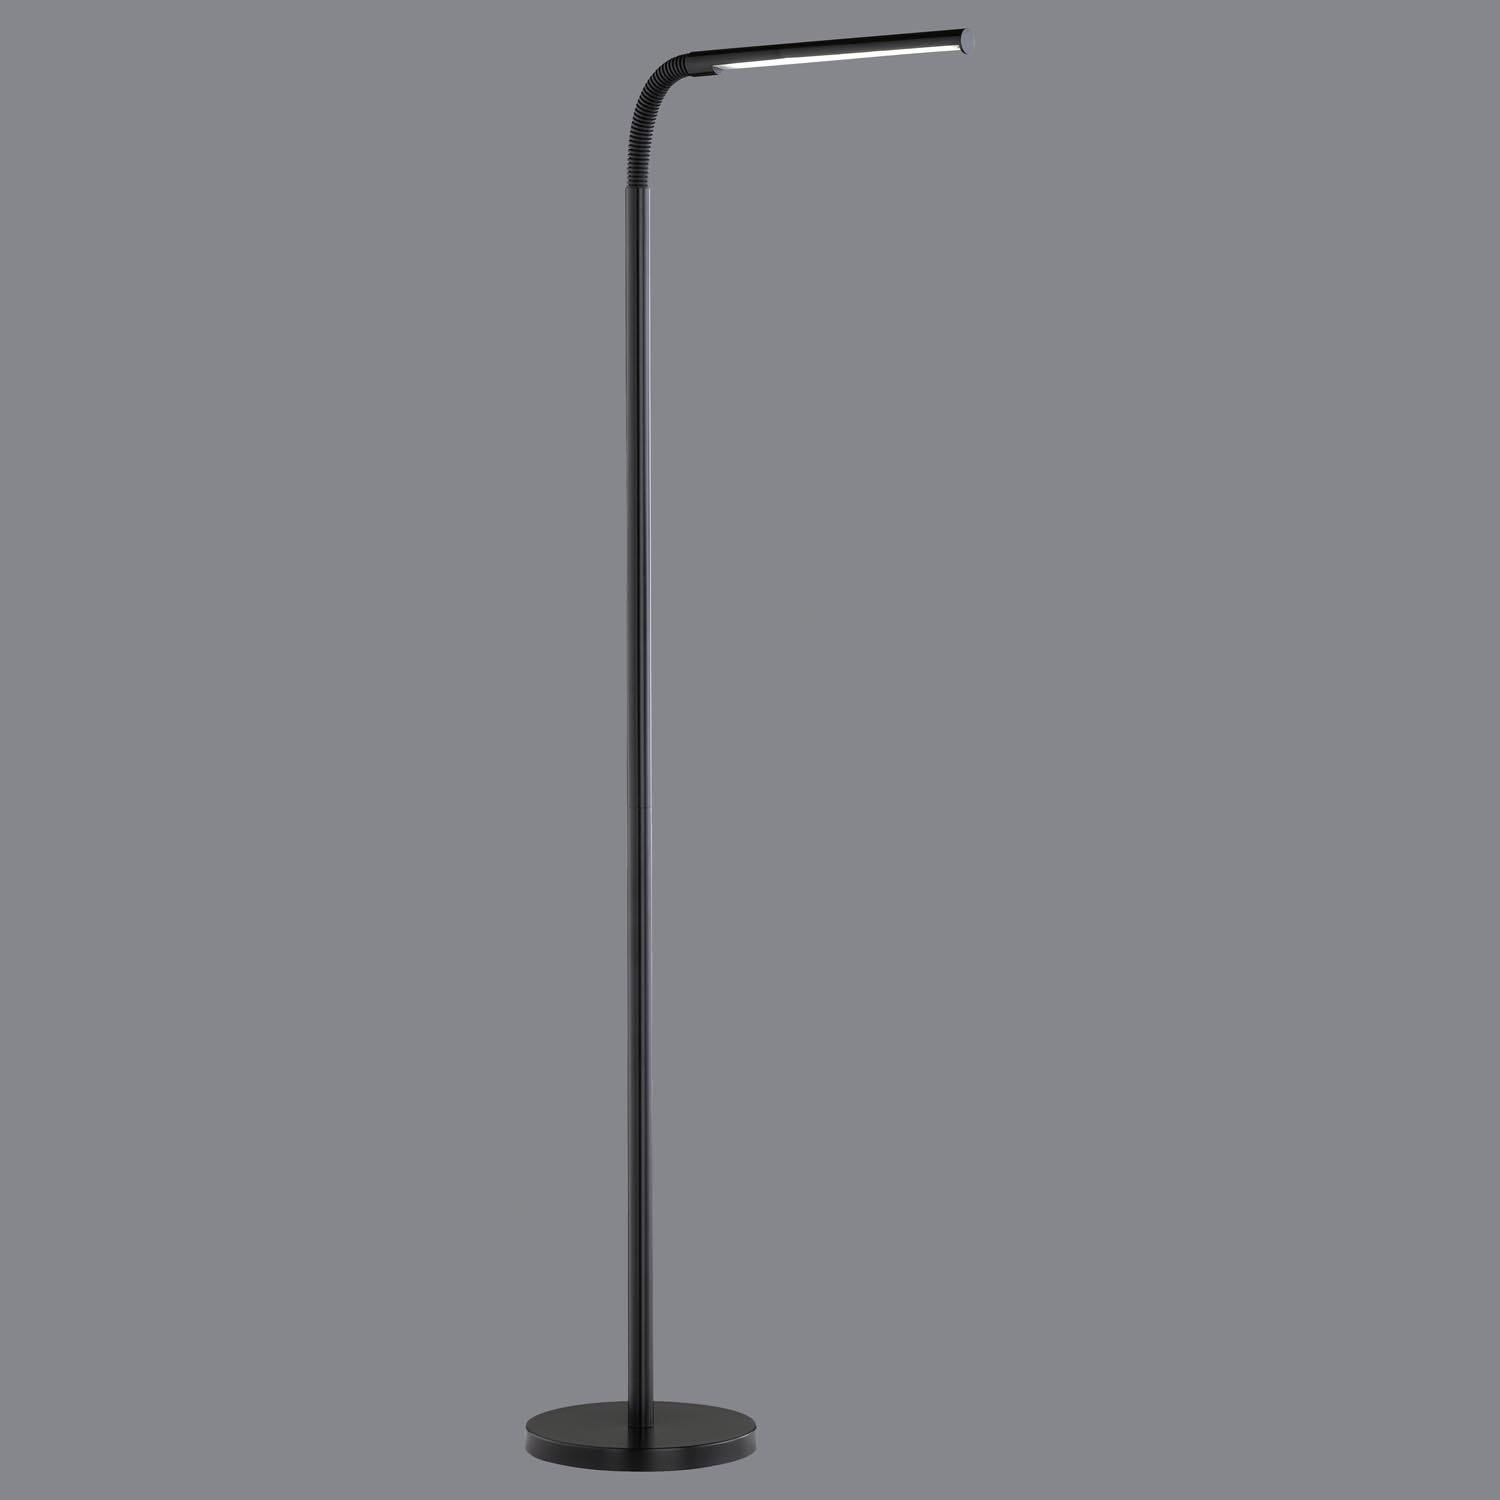 Best floor reading lamps for seniors - Floor Lamp With Reading Lamp Photo 7